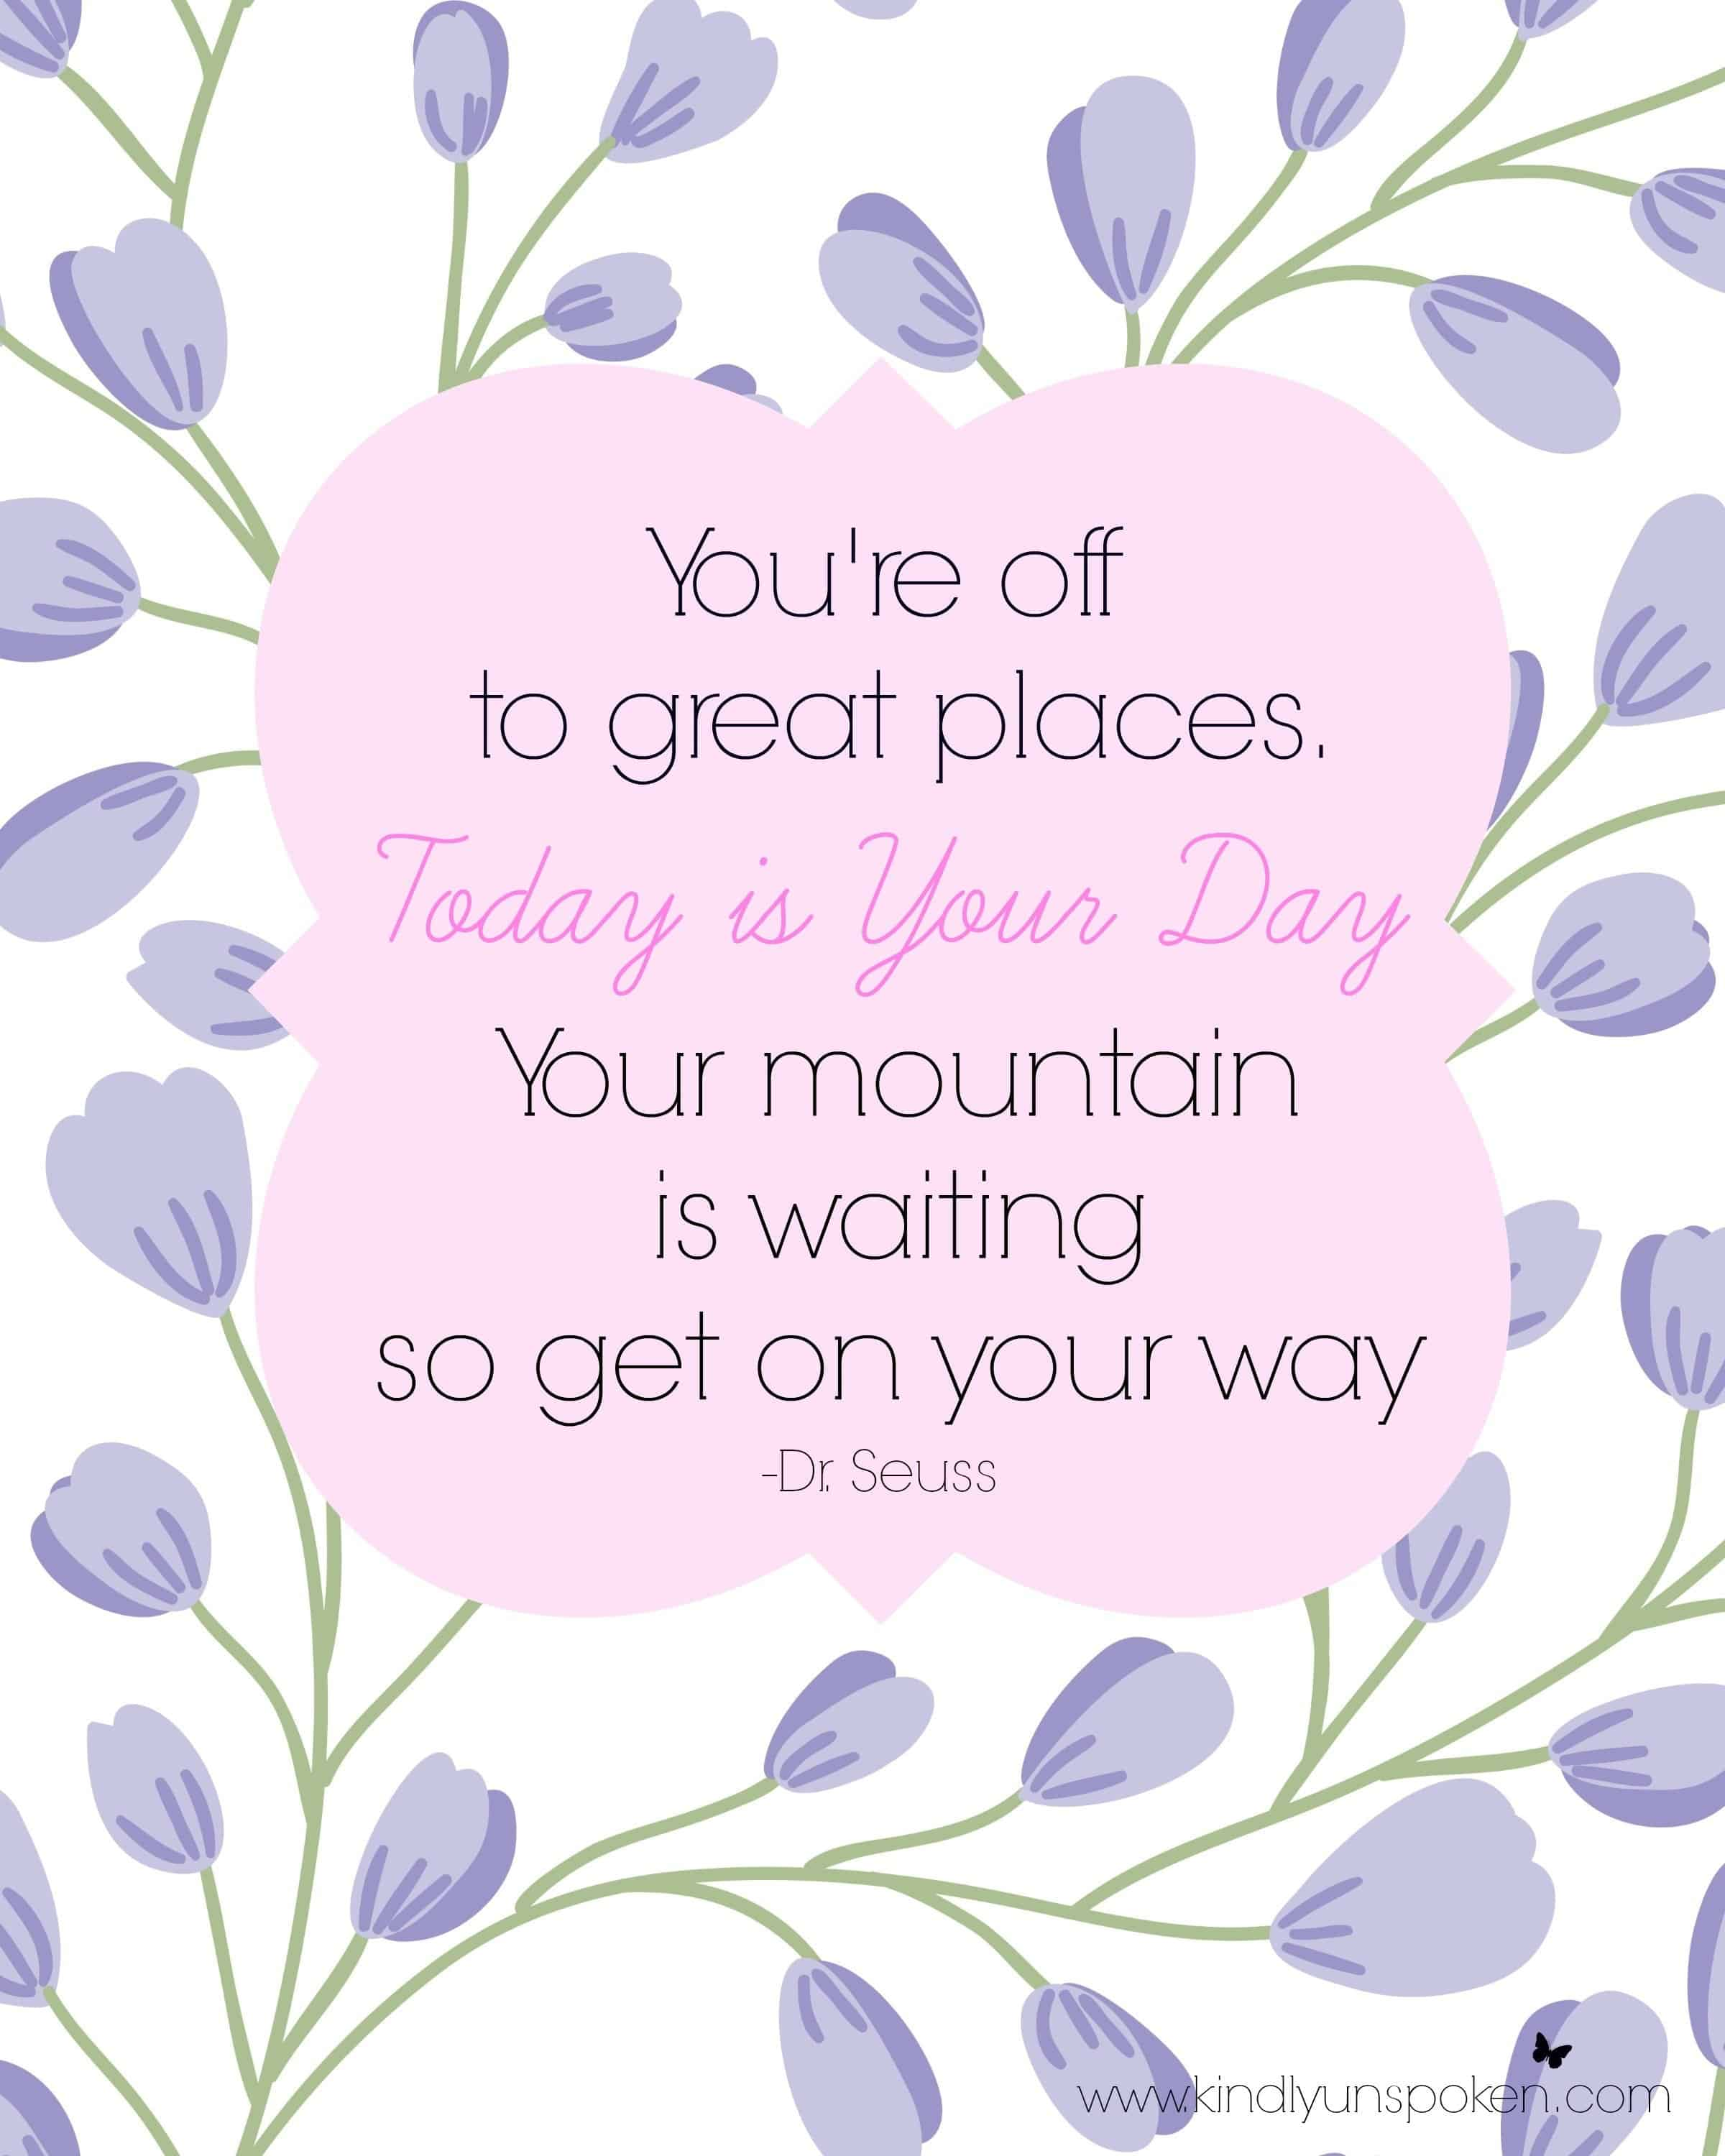 5 Spring Motivational Quotes Free 8x10 Printables